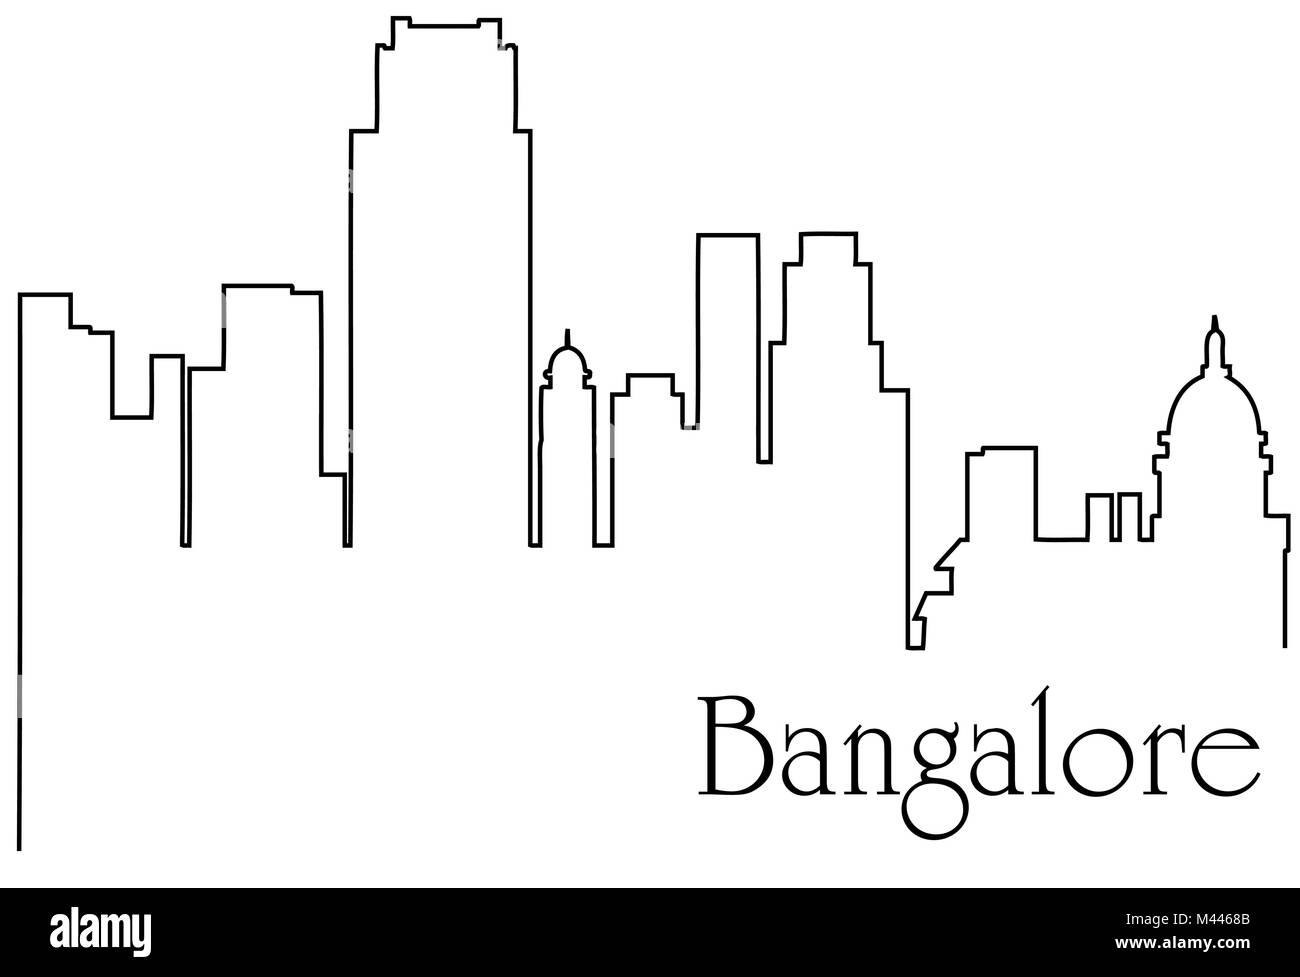 hight resolution of bangalore city one line drawing abstract background with metropolis cityscape